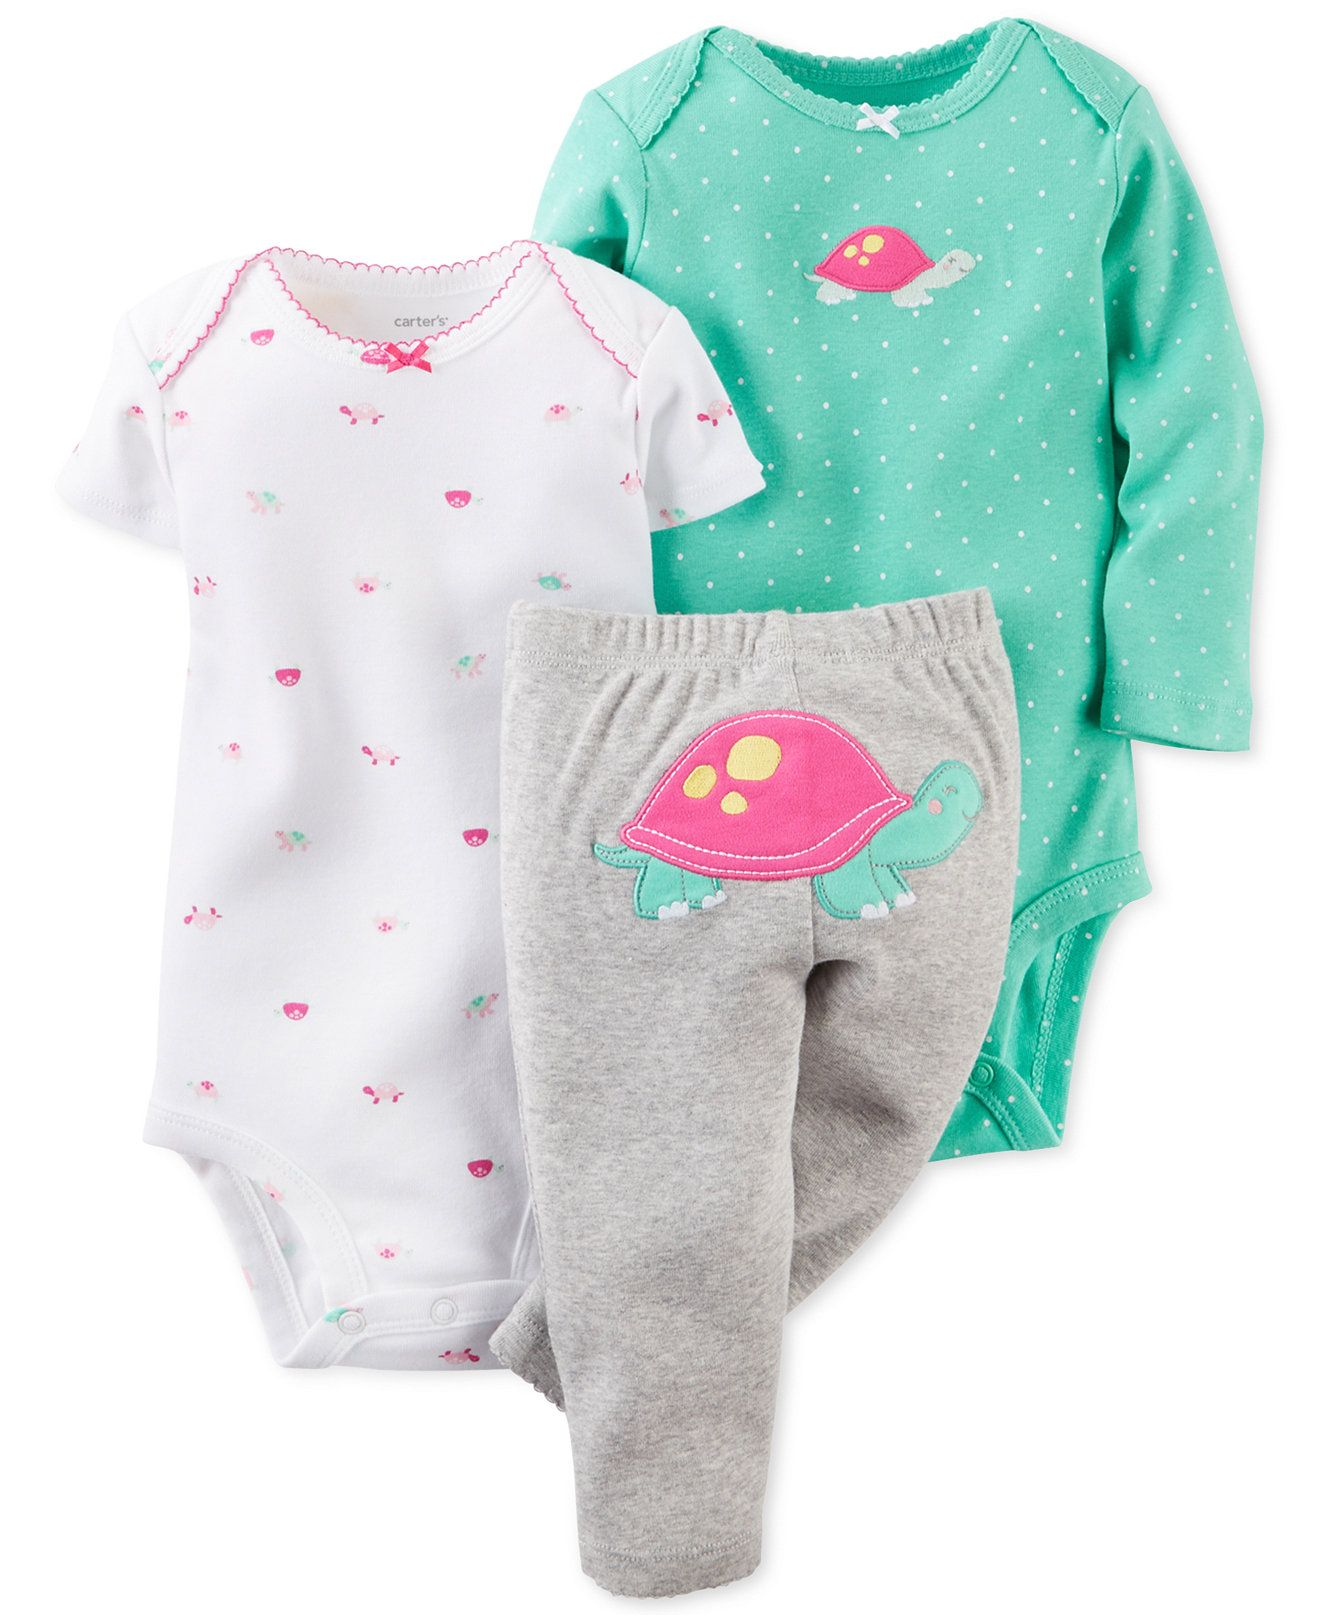 e5f80bfe23b05 Carter's Baby Girls' 3-Piece Turtle Bodysuits & Pants Set - Kids ...